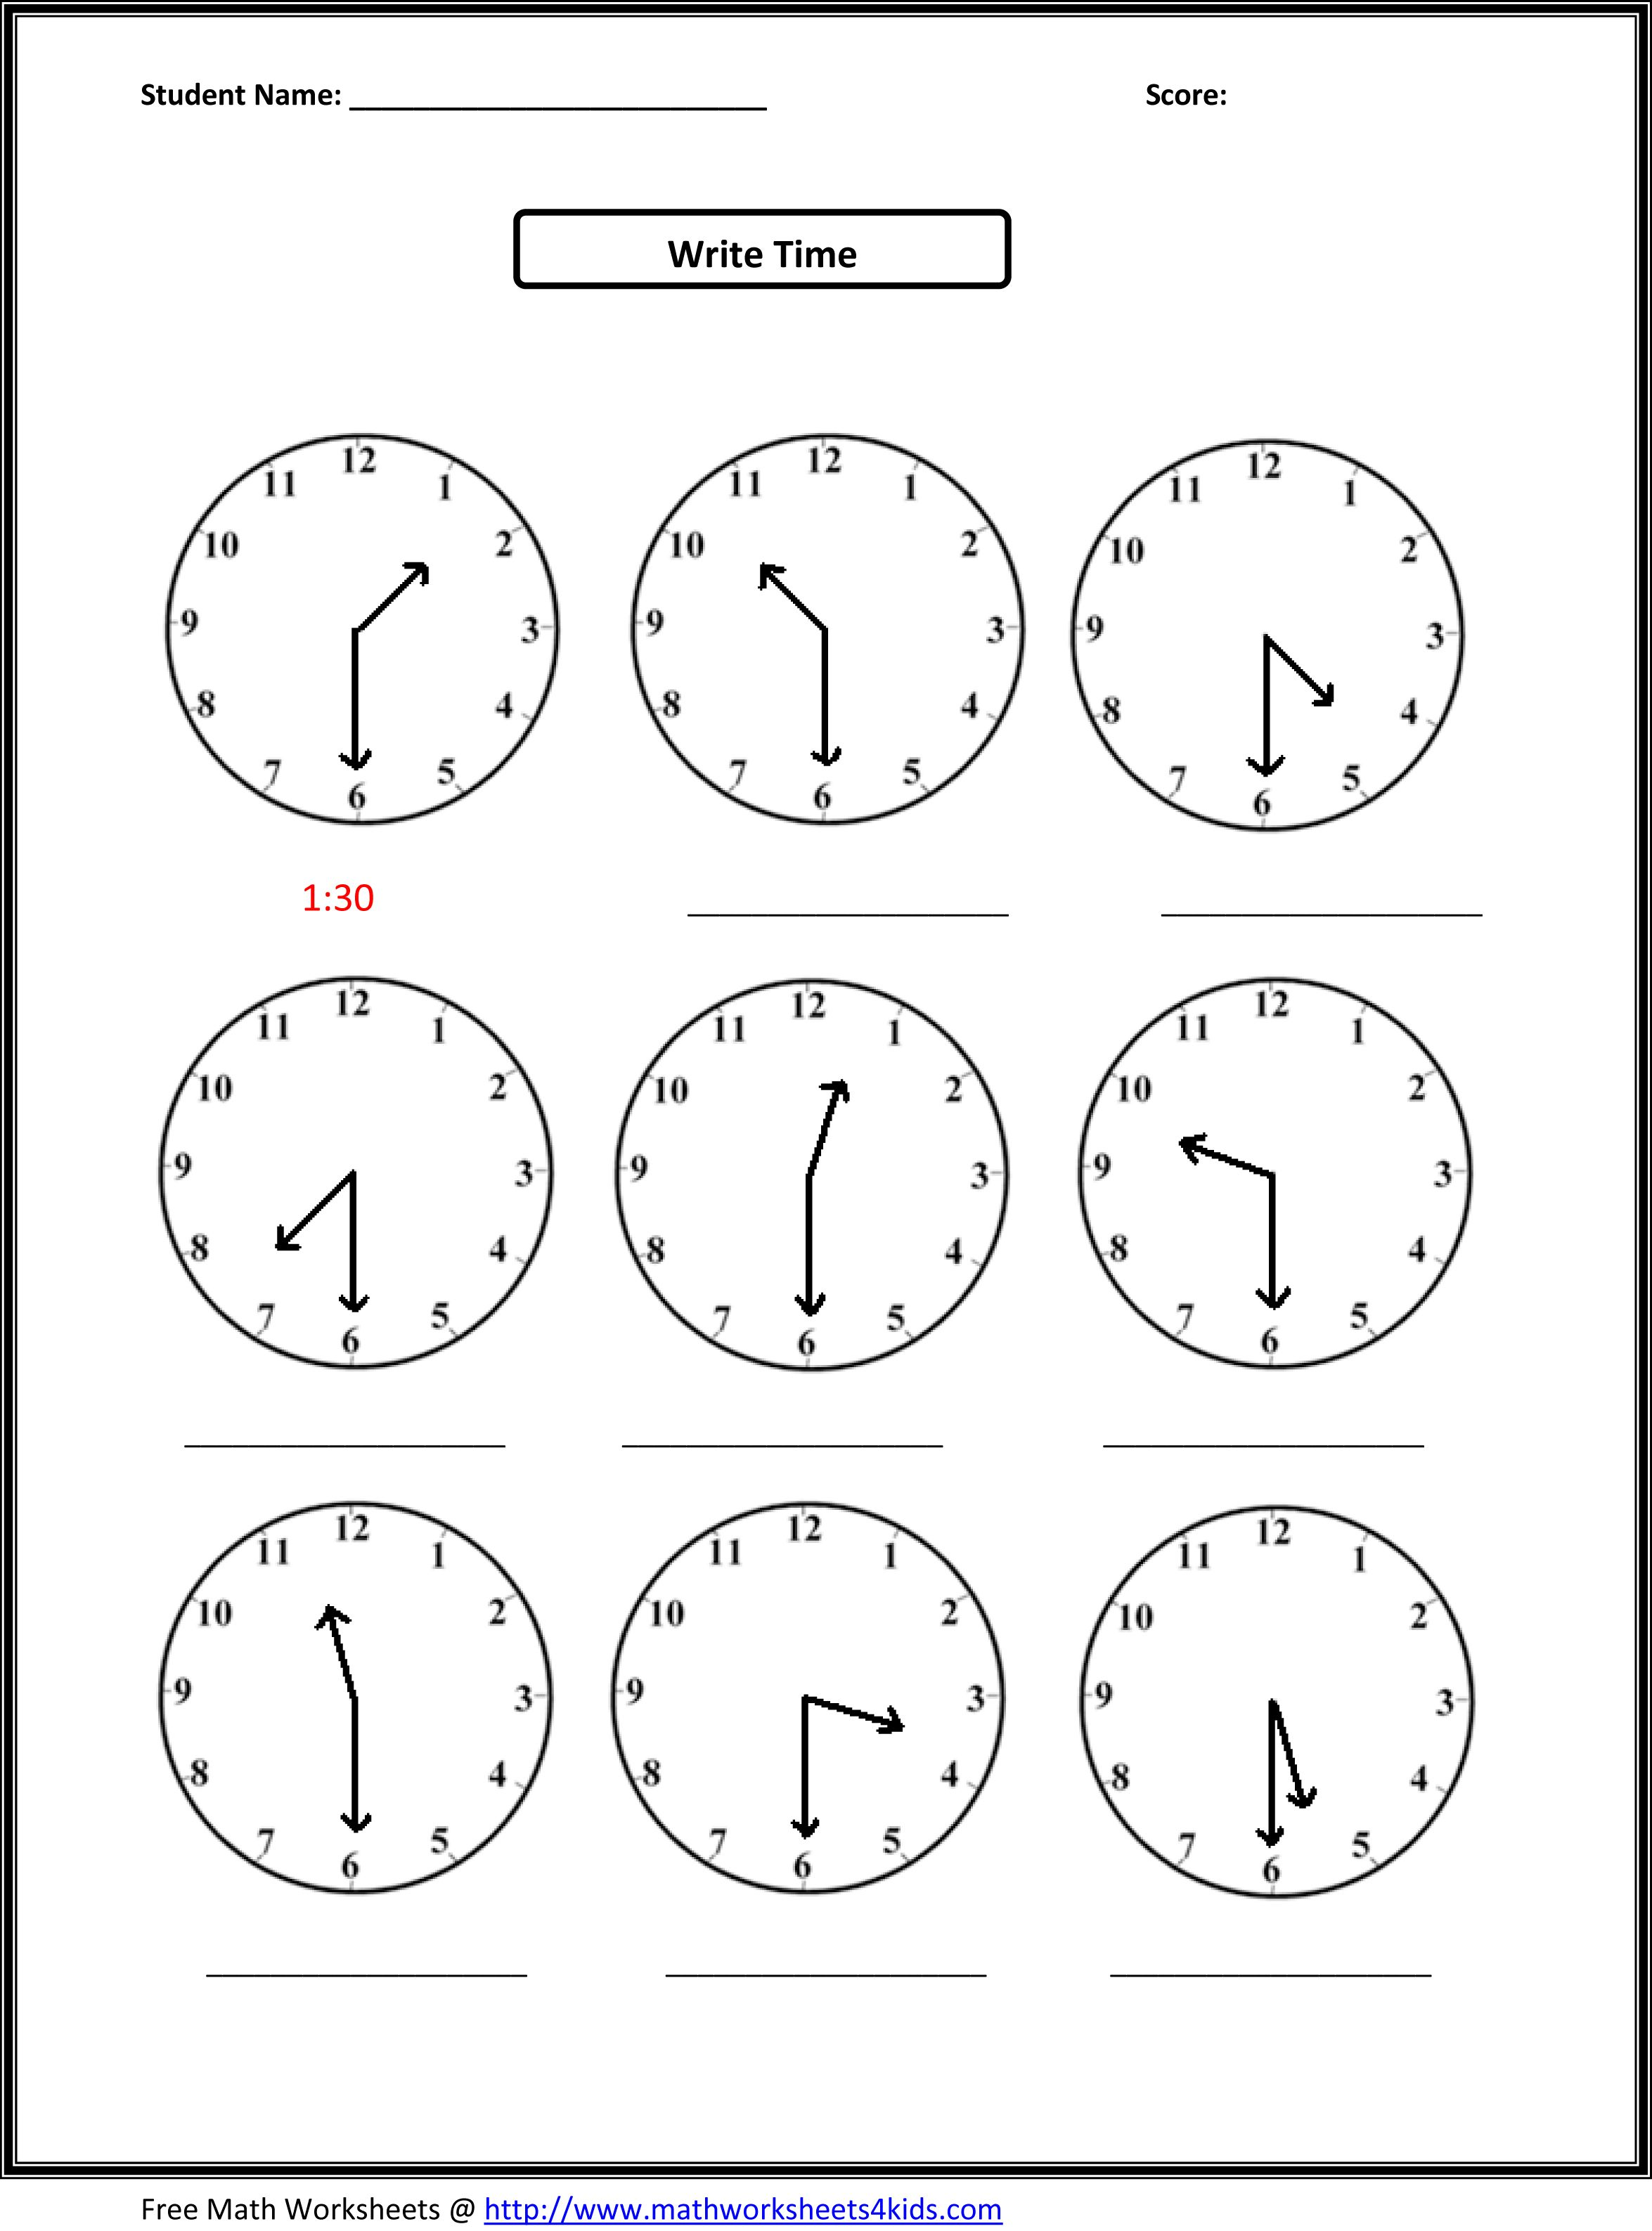 Proatmealus  Terrific Worksheet On Time For Grade   Reocurent With Exciting Free Printable Telling Time Worksheets Nd Grade  Reocurent With Archaic Writing Worksheets For Th Grade Also Fractions Number Line Worksheet In Addition Contraction Worksheets For Nd Grade And How To Balance Chemical Equations Worksheet As Well As Functional Math Worksheets Additionally Free Math Worksheets For Grade  From Reocurentcom With Proatmealus  Exciting Worksheet On Time For Grade   Reocurent With Archaic Free Printable Telling Time Worksheets Nd Grade  Reocurent And Terrific Writing Worksheets For Th Grade Also Fractions Number Line Worksheet In Addition Contraction Worksheets For Nd Grade From Reocurentcom